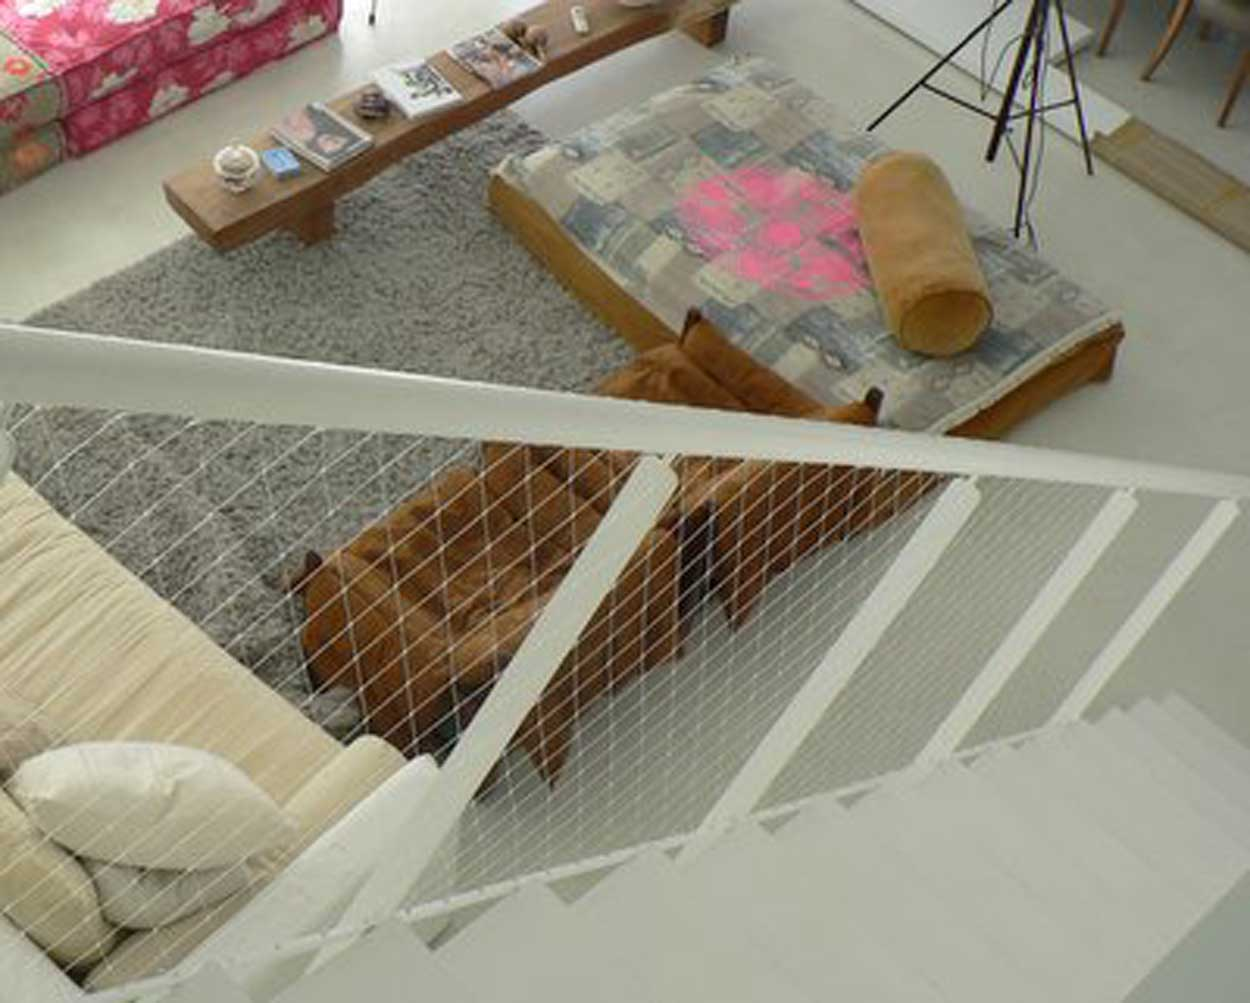 Merveilleux ... Safety Net For Stairs ...